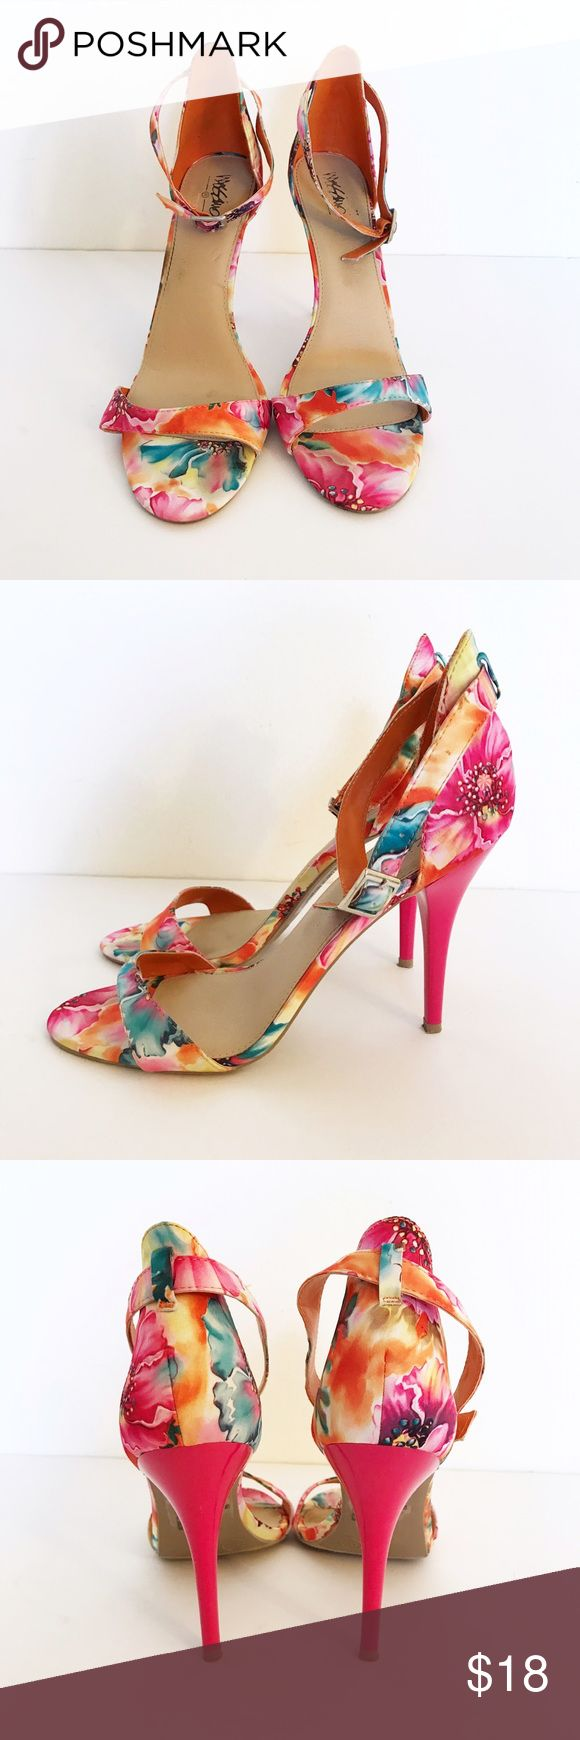 """Bright Floral Strappy Heels Strappy heels with a bright floral print. Perfect for Spring & summer! Heels are 4.5"""" Mossimo Supply Co Shoes Heels"""